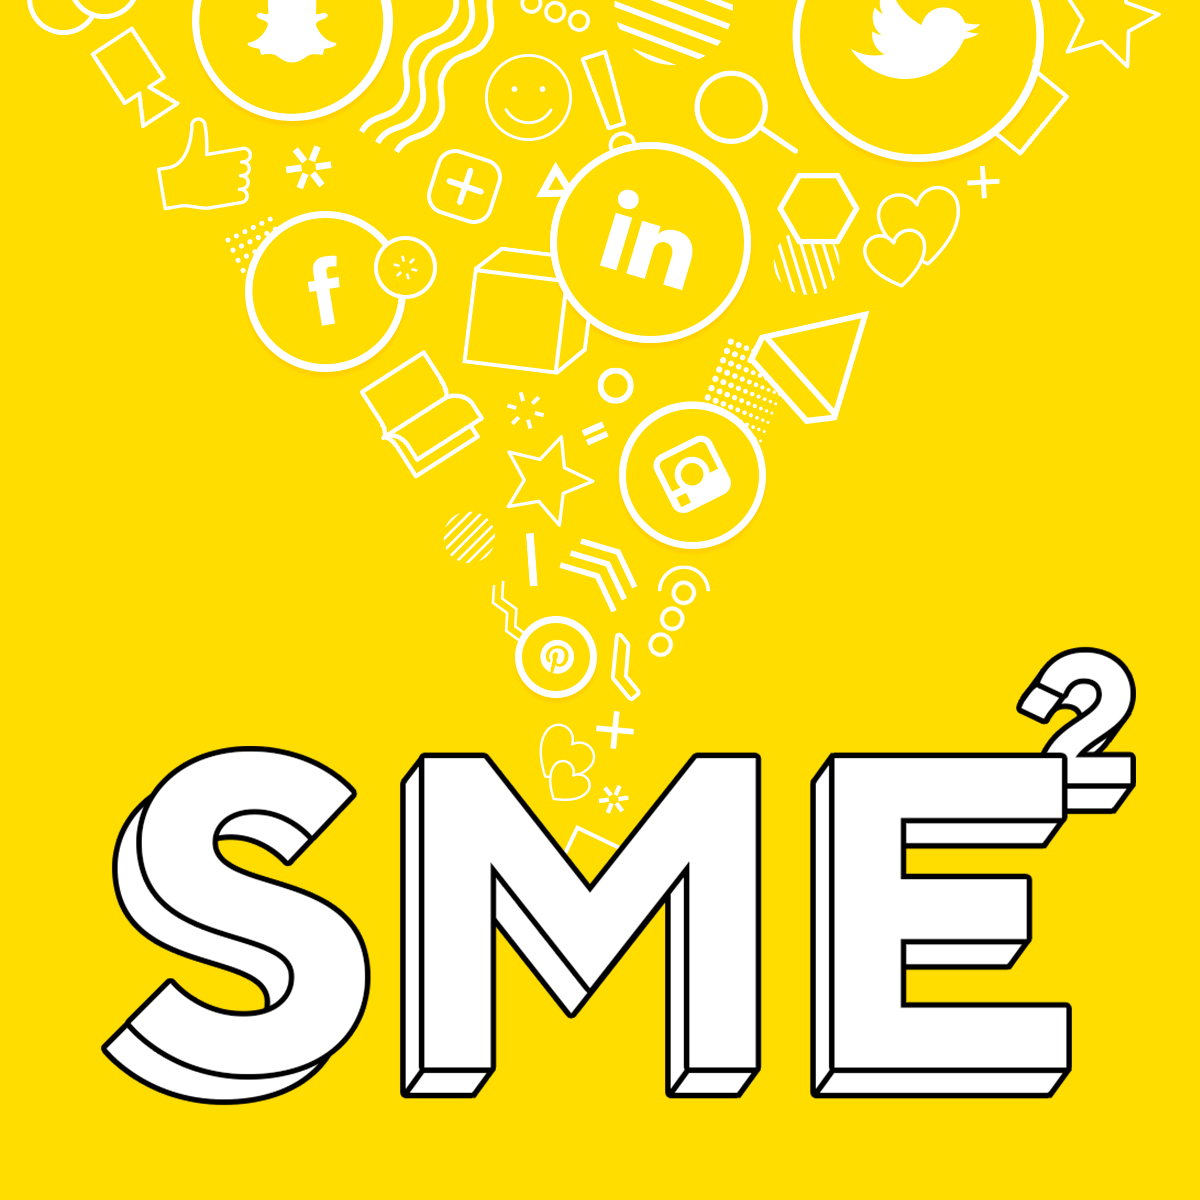 Introducing... SME²